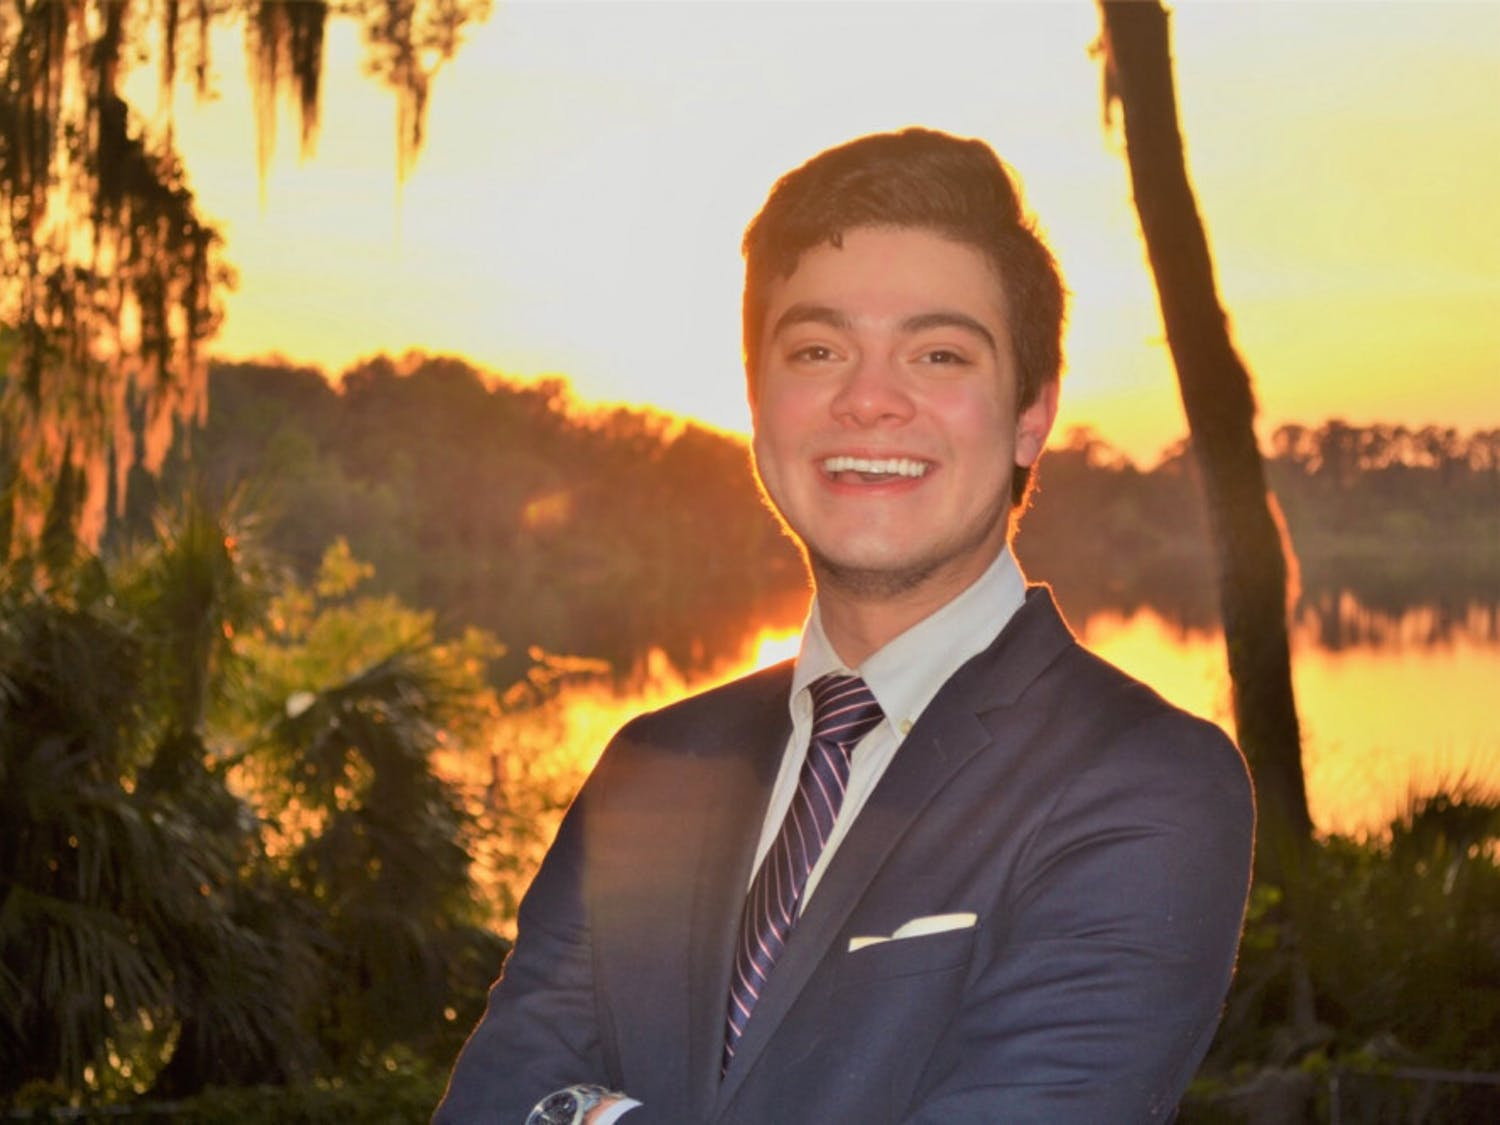 Herman Younger, 23, began a petition to create a restaurant workers union after being frustrated as a server at Bahama Breeze and T.G.I. Fridays. He graduated from UF in Spring 2019 with a degree in political science.